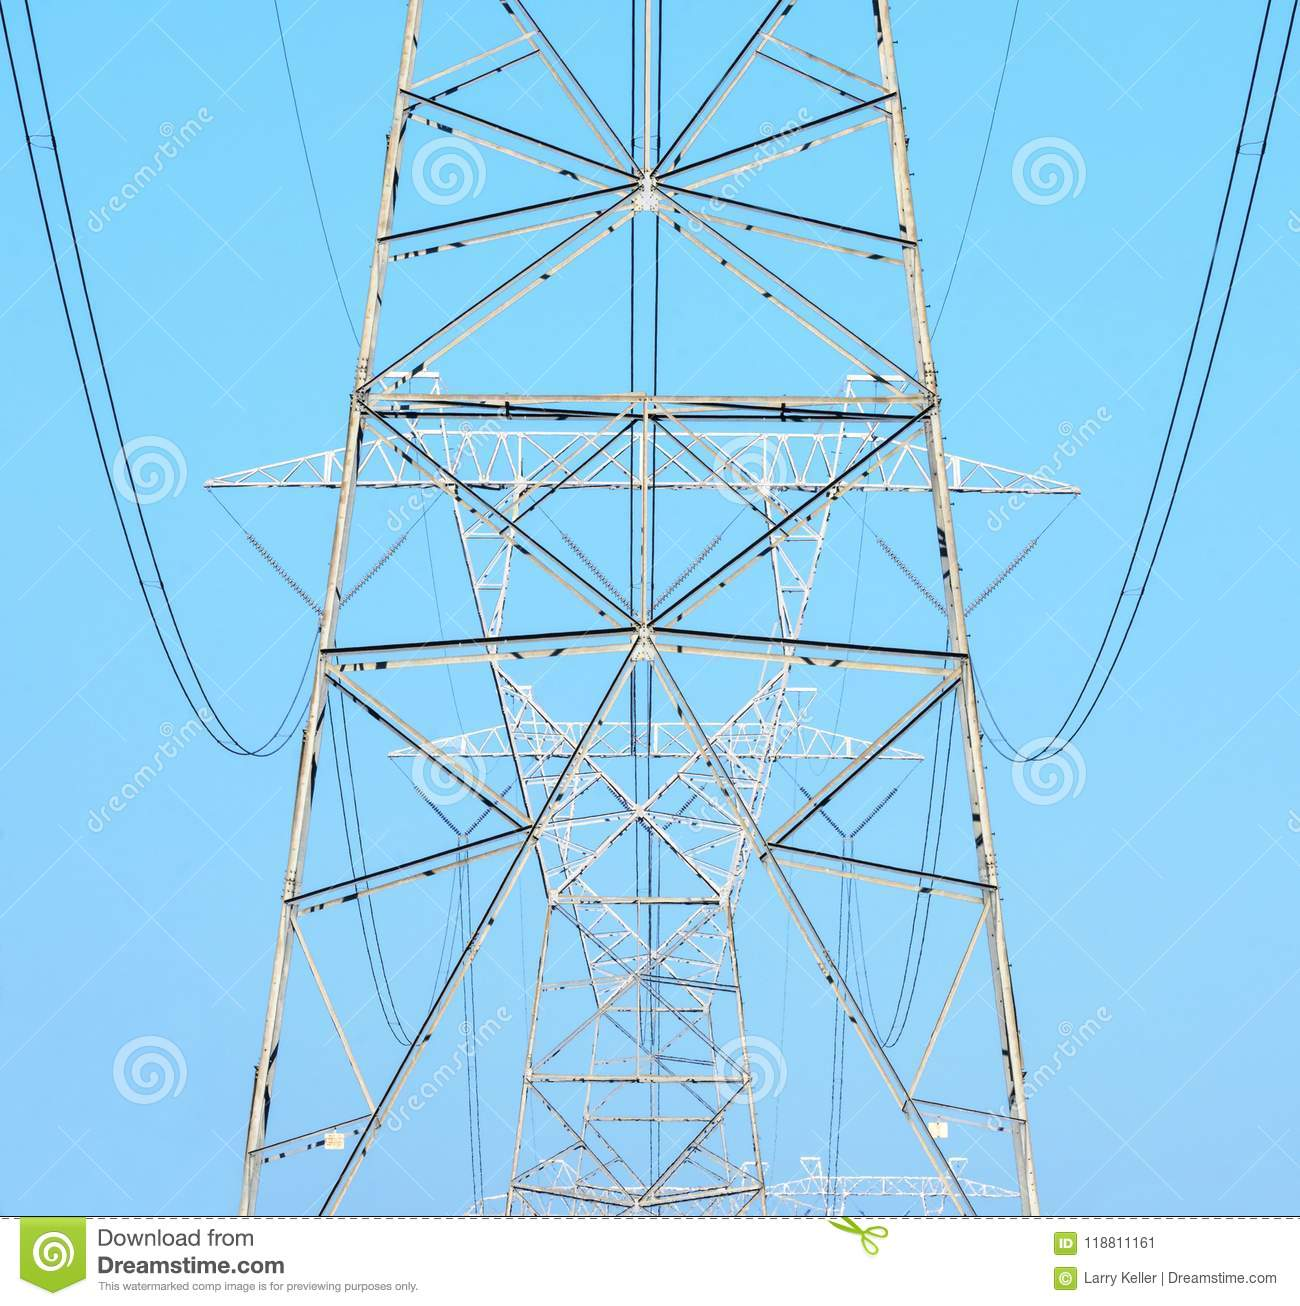 Electrical Power cables and towers